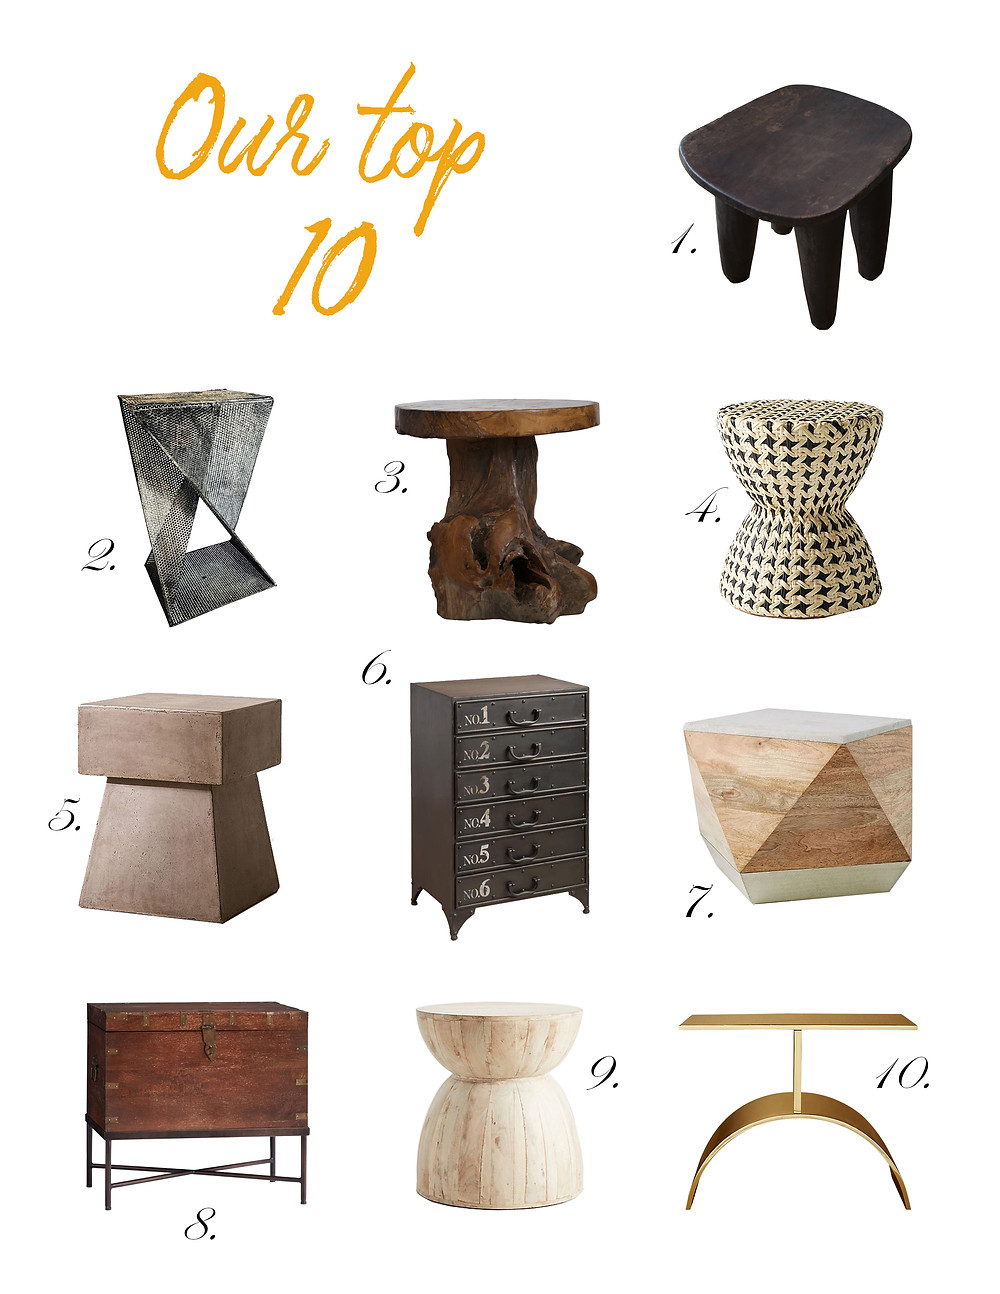 Side Table - Top 10